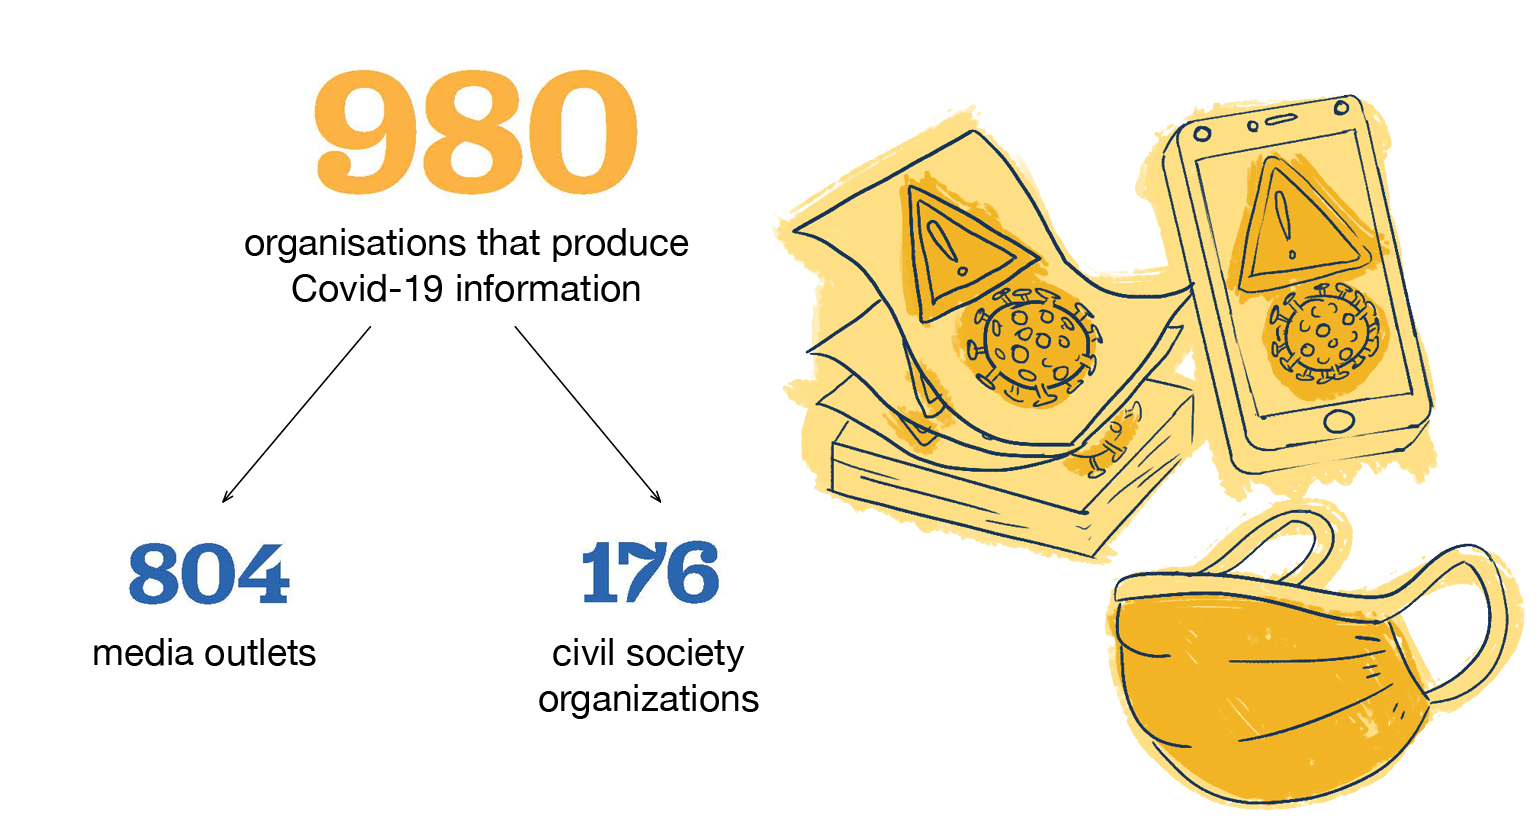 980 organizations that produce COVID-19 information - 804 media outlets - 176 civil society orgs